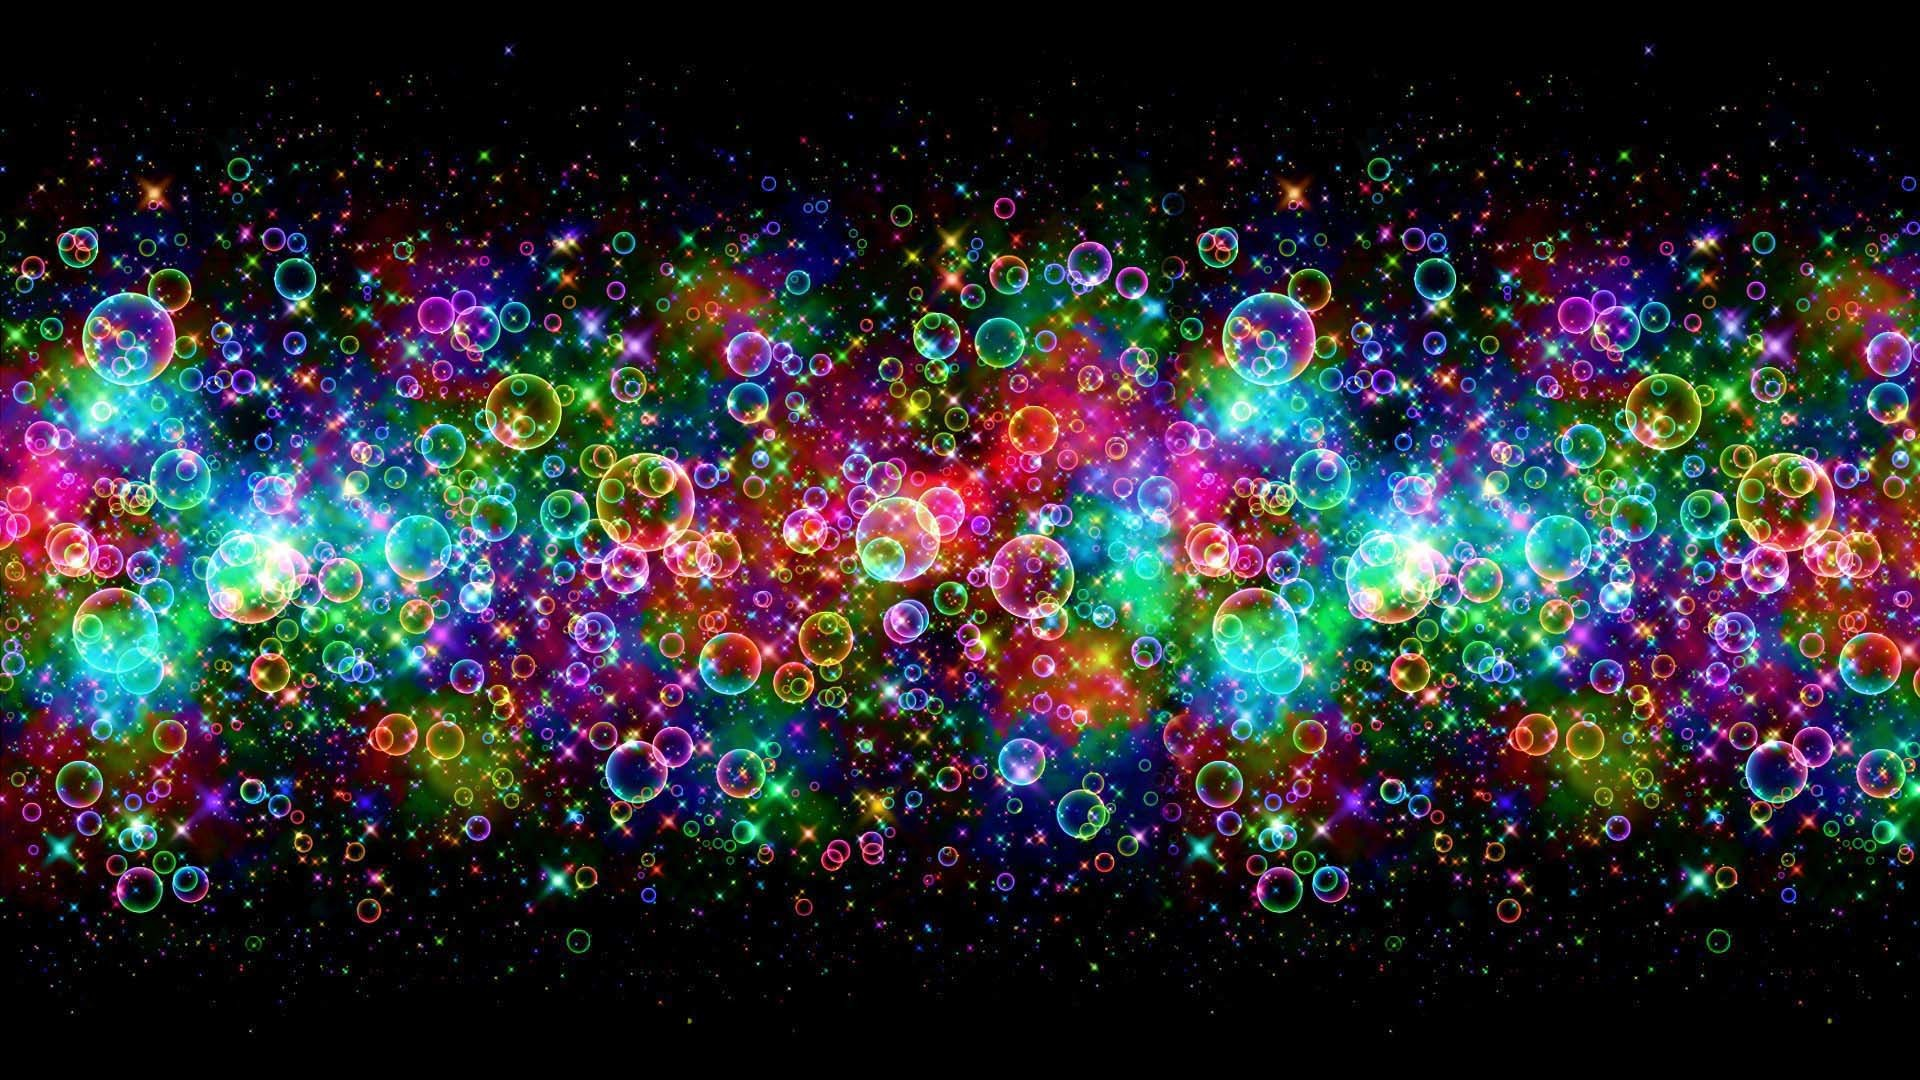 Abstract hd Wallpaper widescreen pictures new photo